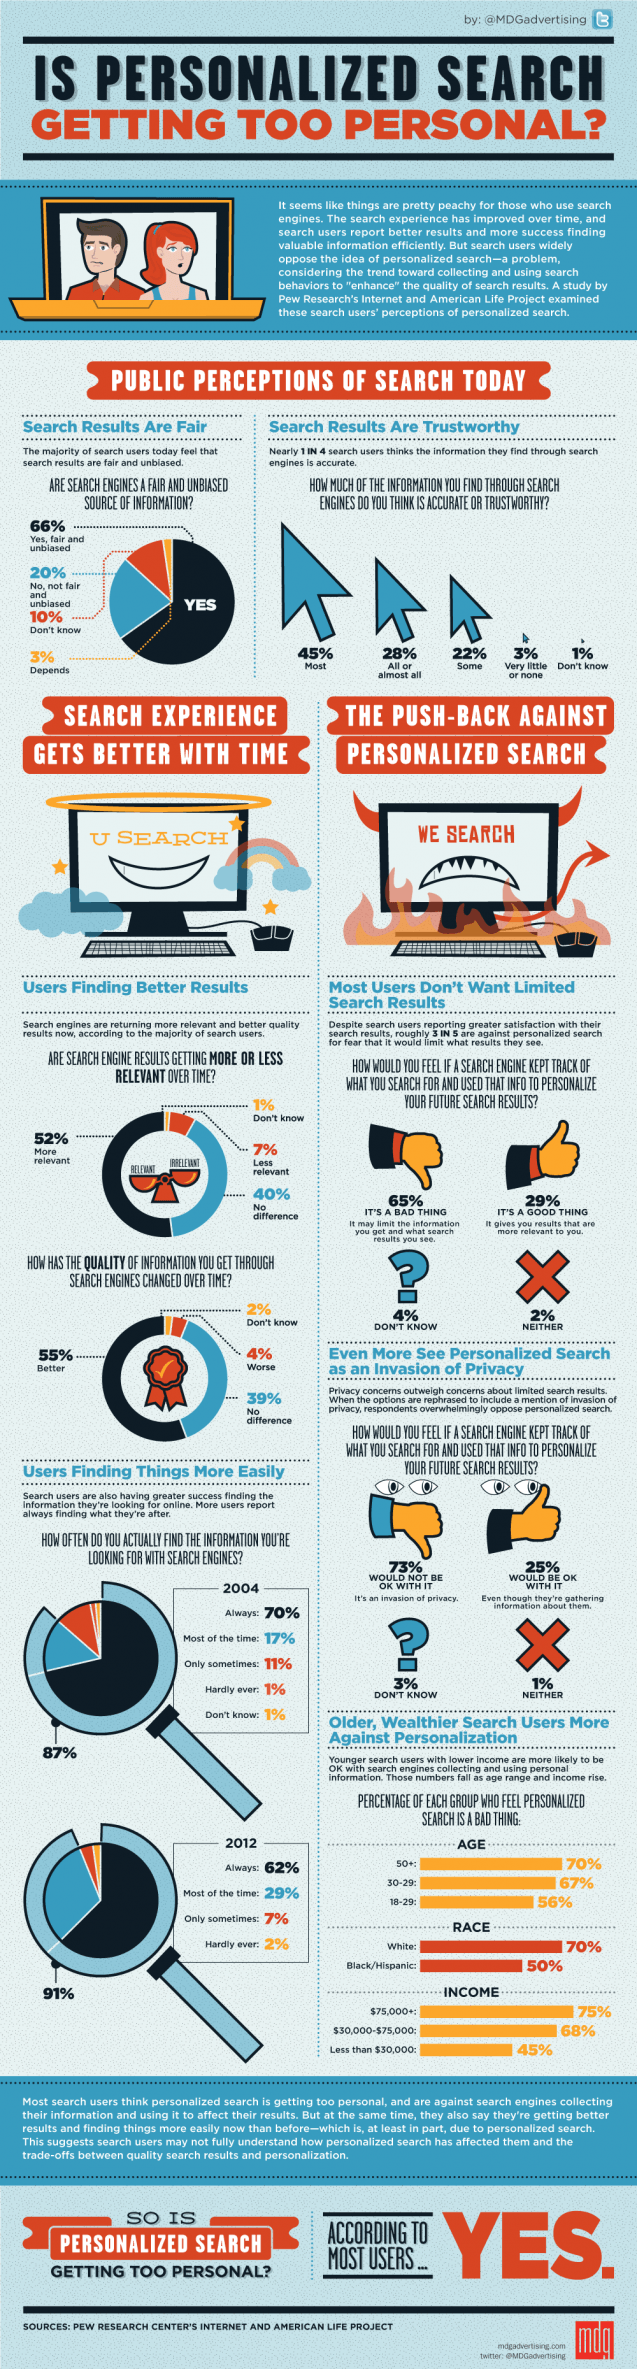 User Thoughts on Personalized Search [Infographic]